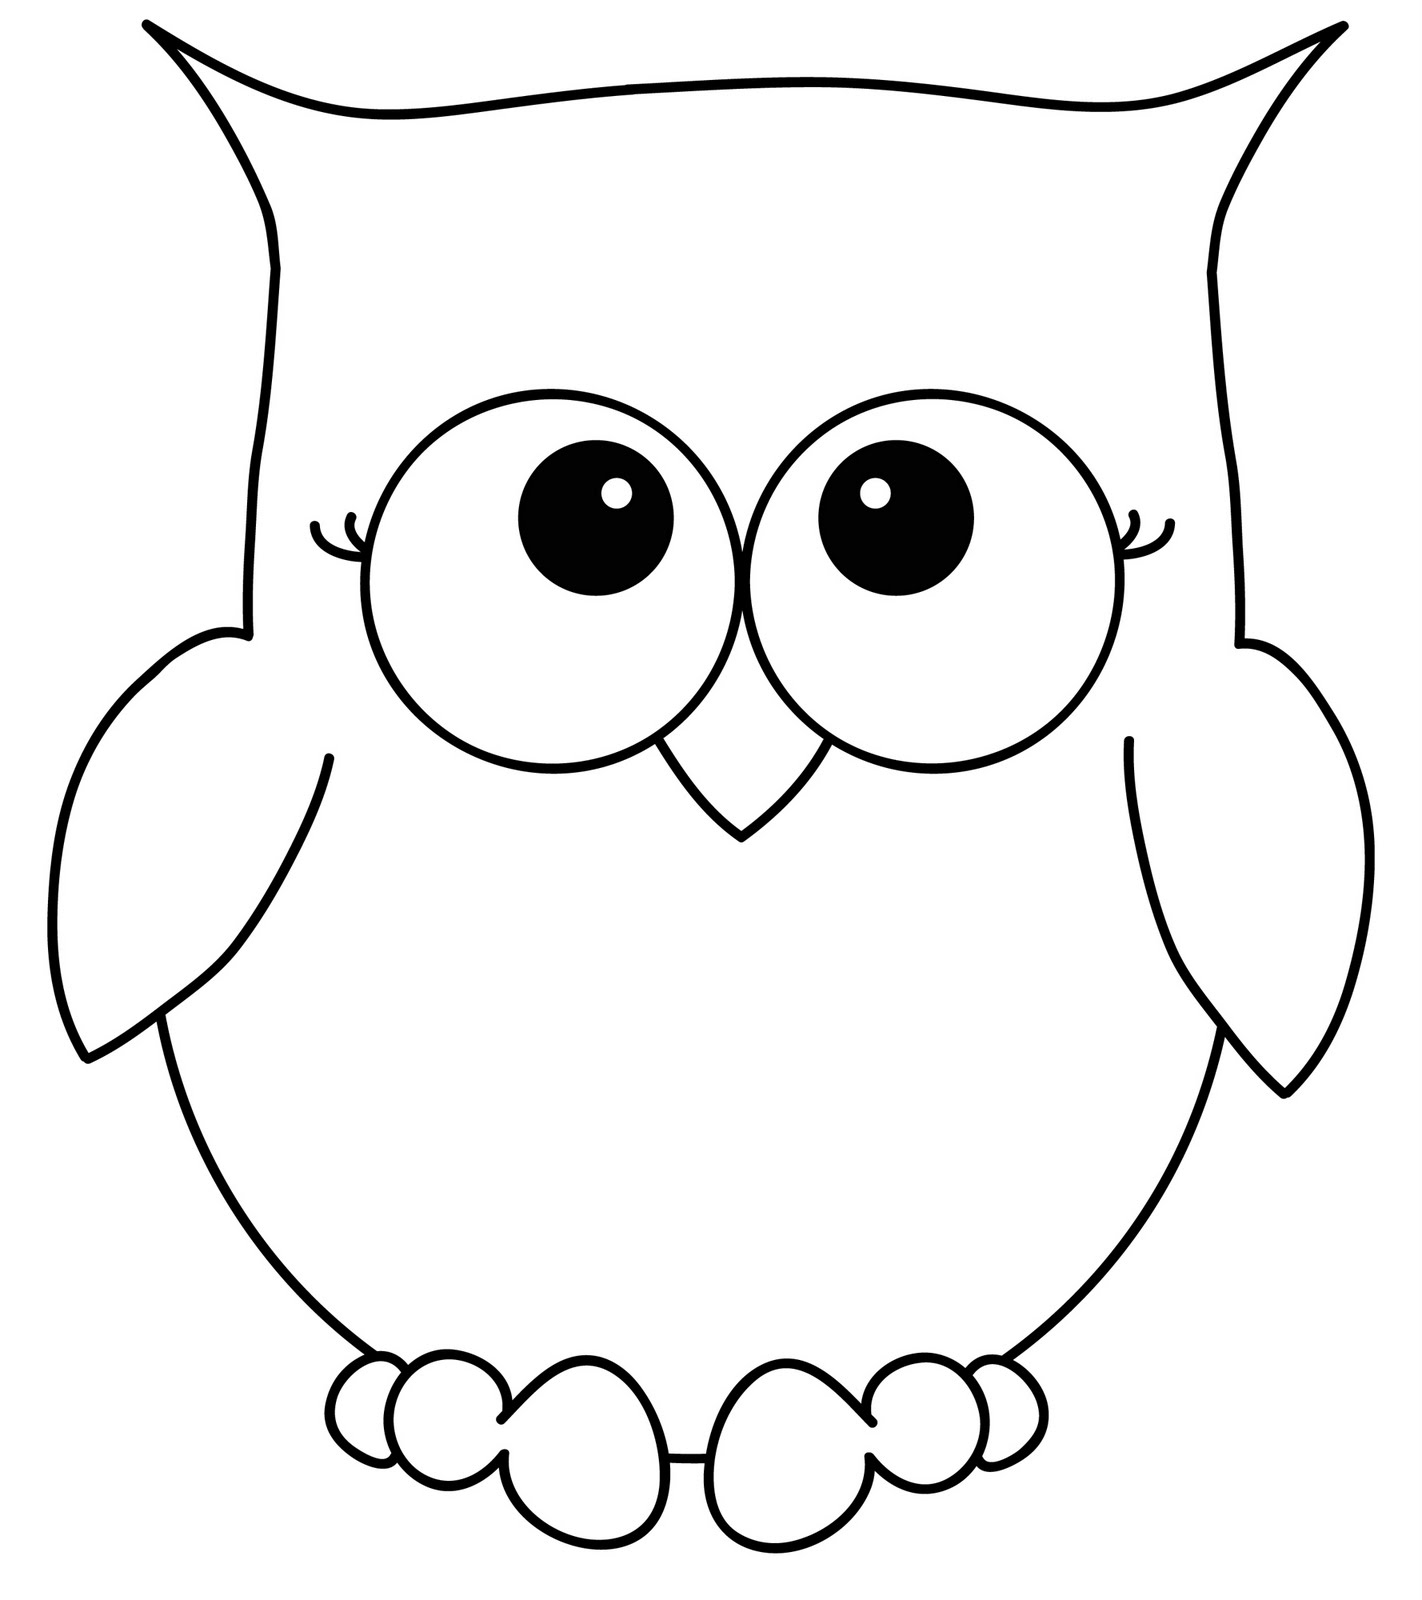 printable owl free owl coloring pages for adults printable to download owl printable